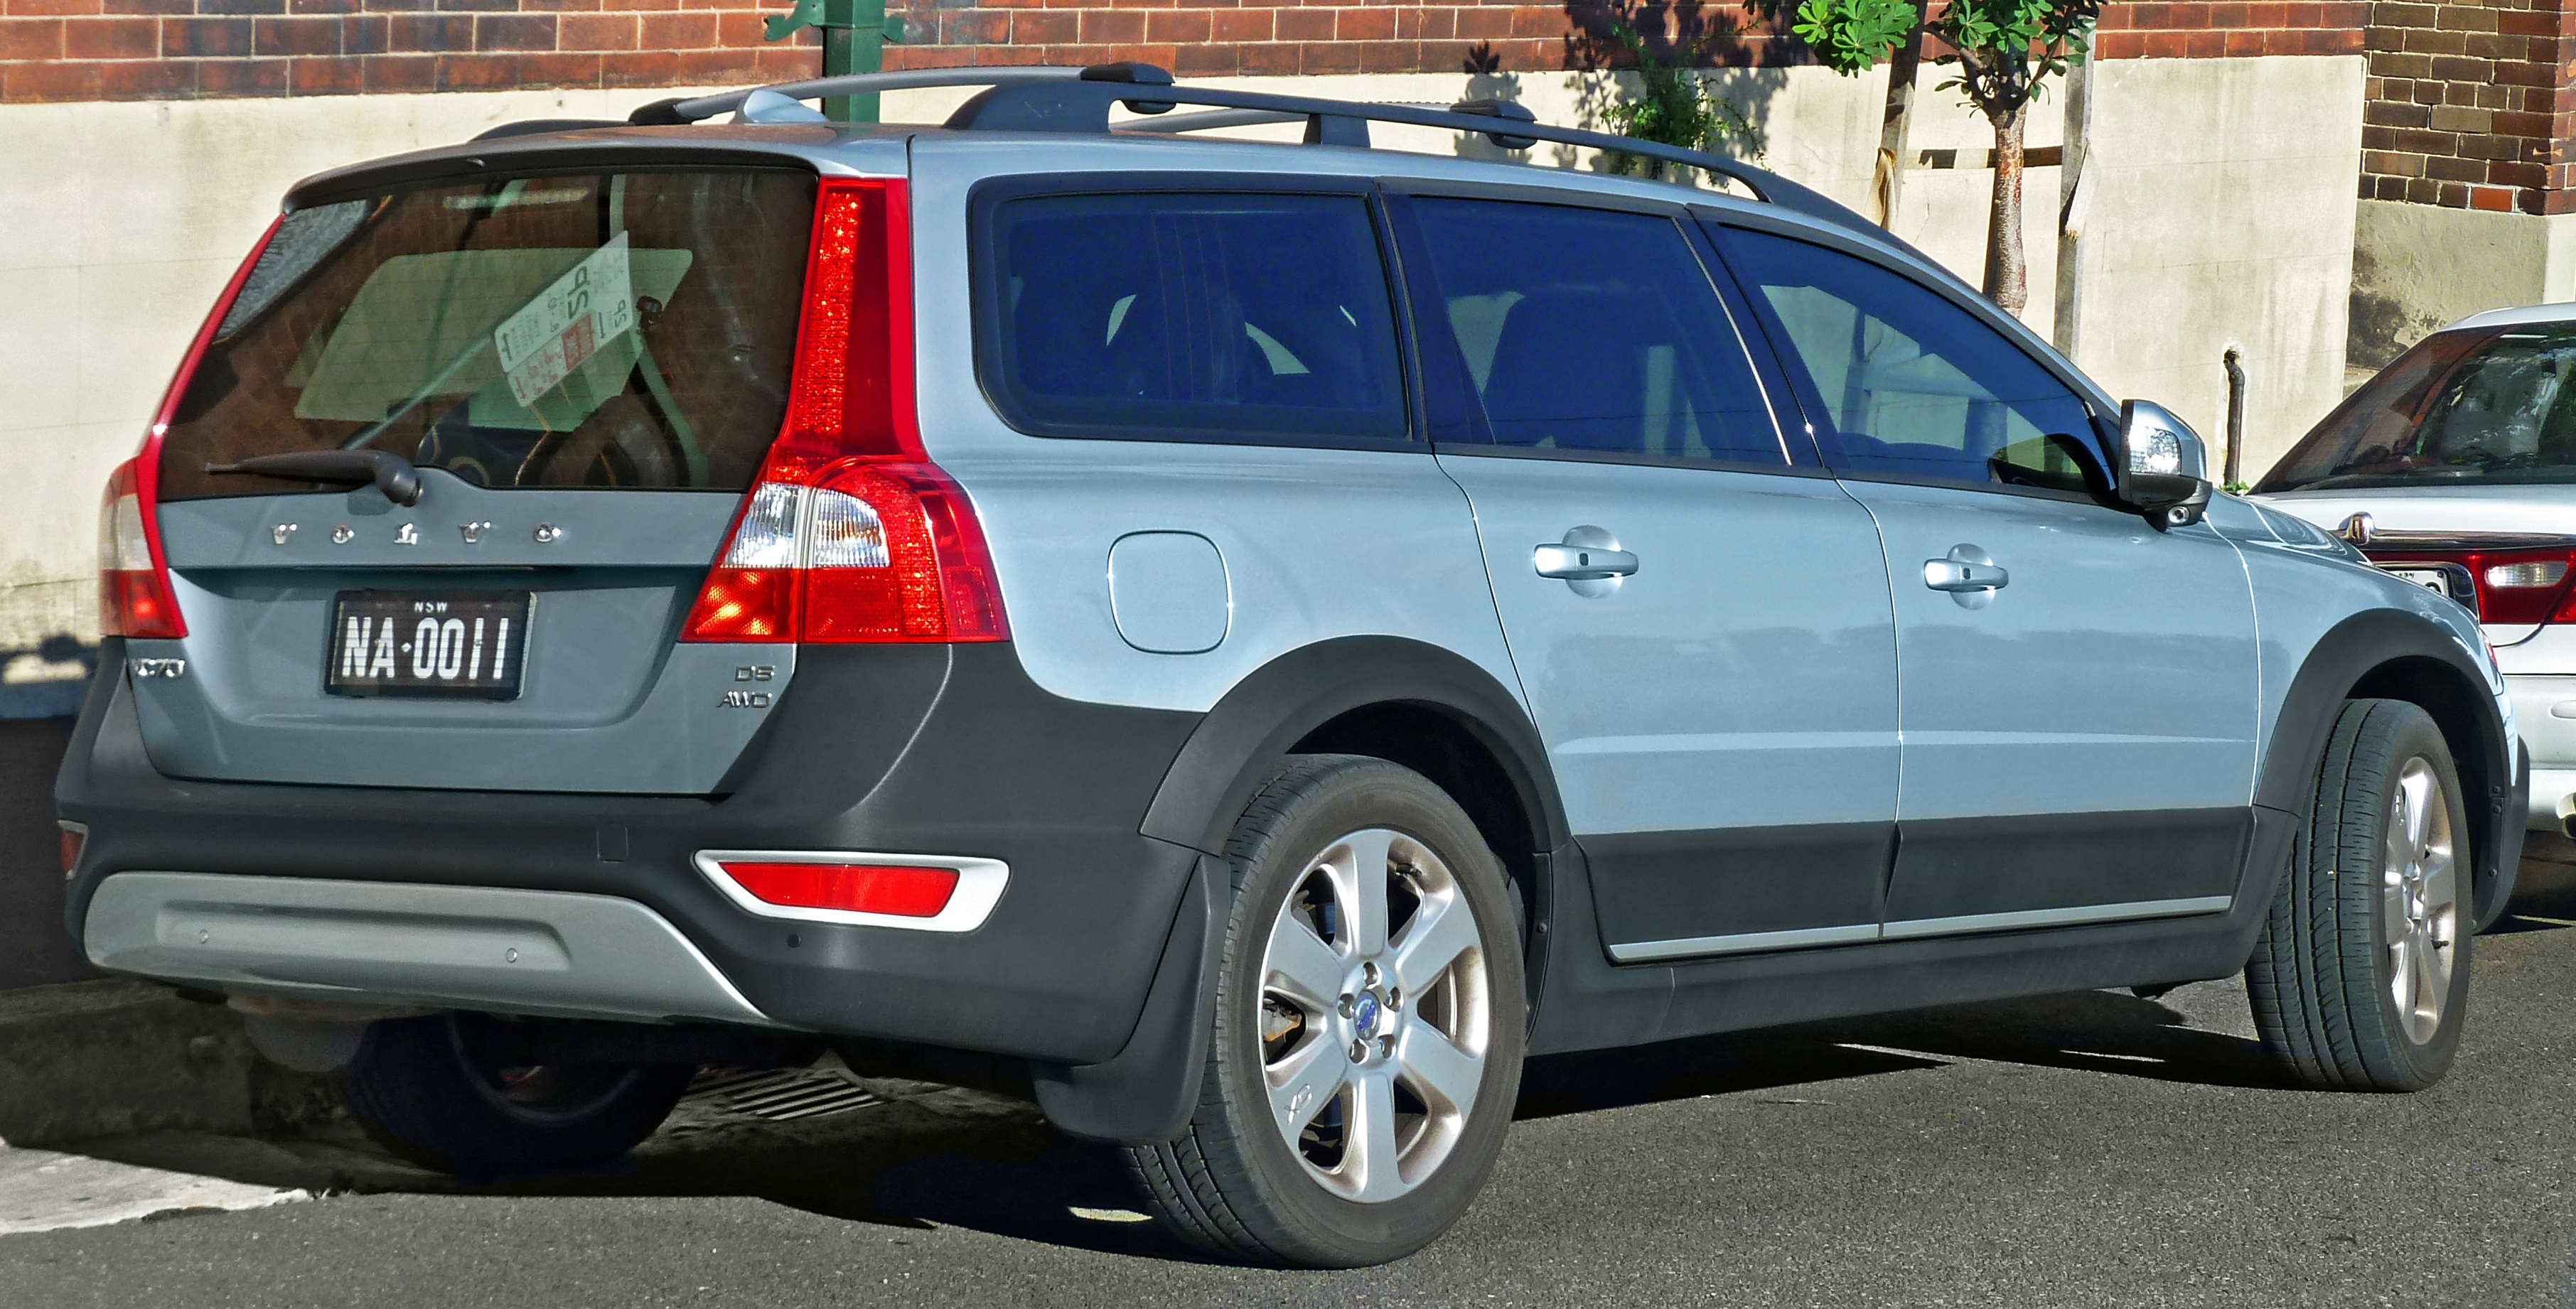 File:2007-2011 Volvo XC70 (BZ) D5 station wagon (2011-03-23).jpg - Wikimedia Commons